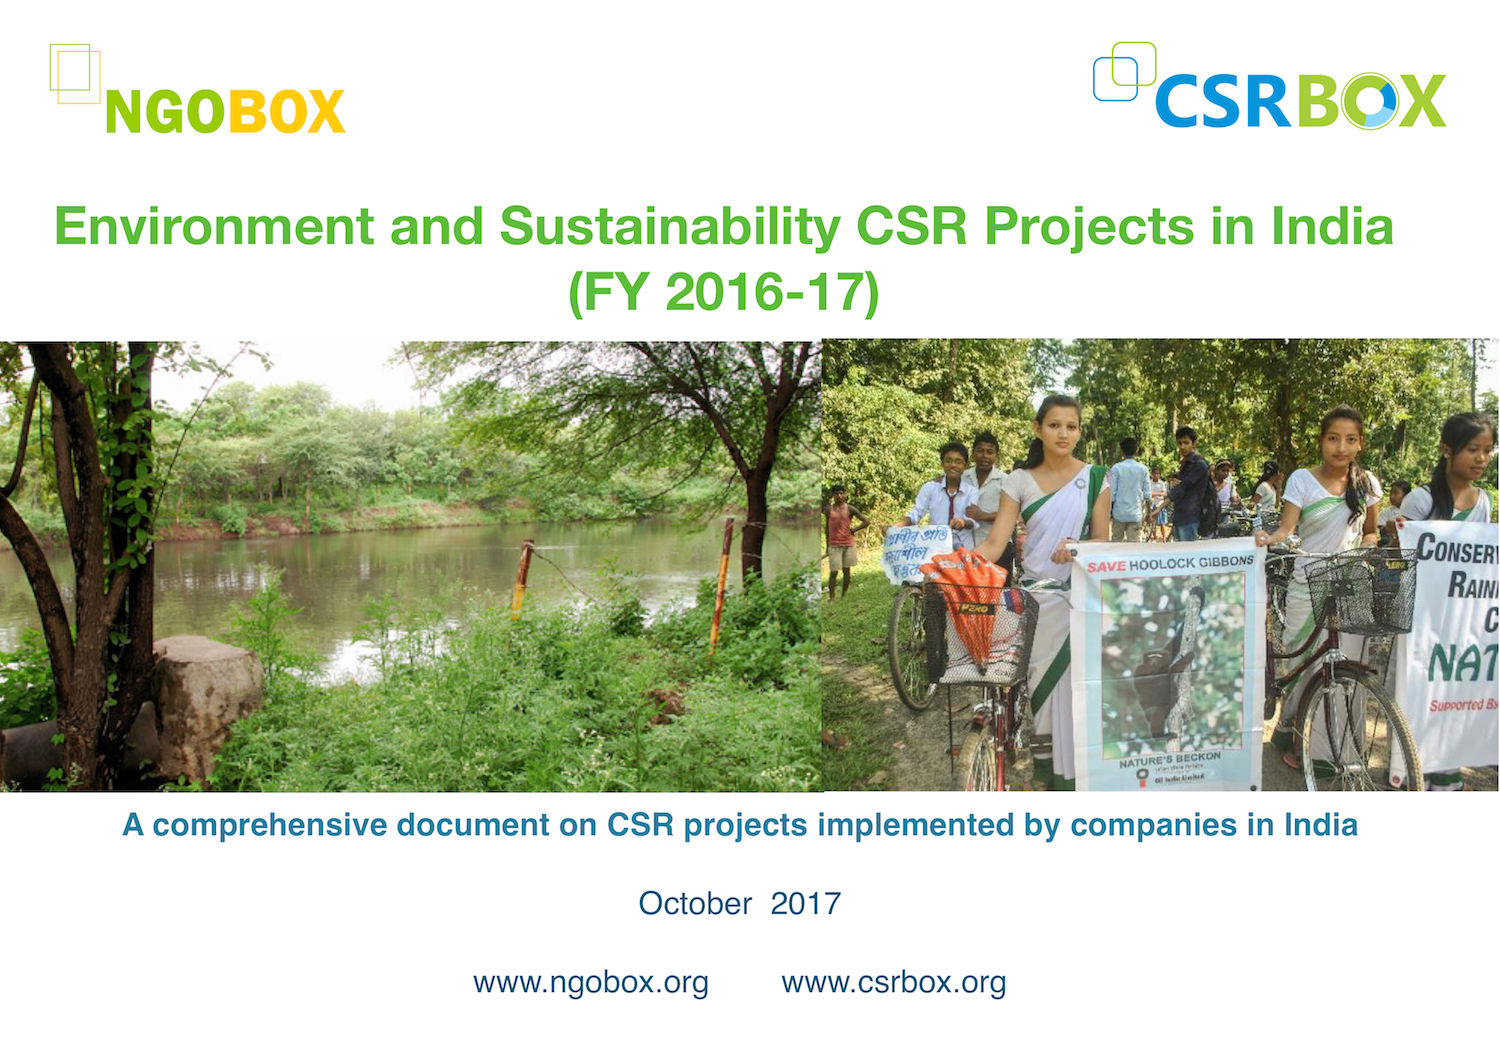 Environment CSR Projects in India (FY 2016-17)